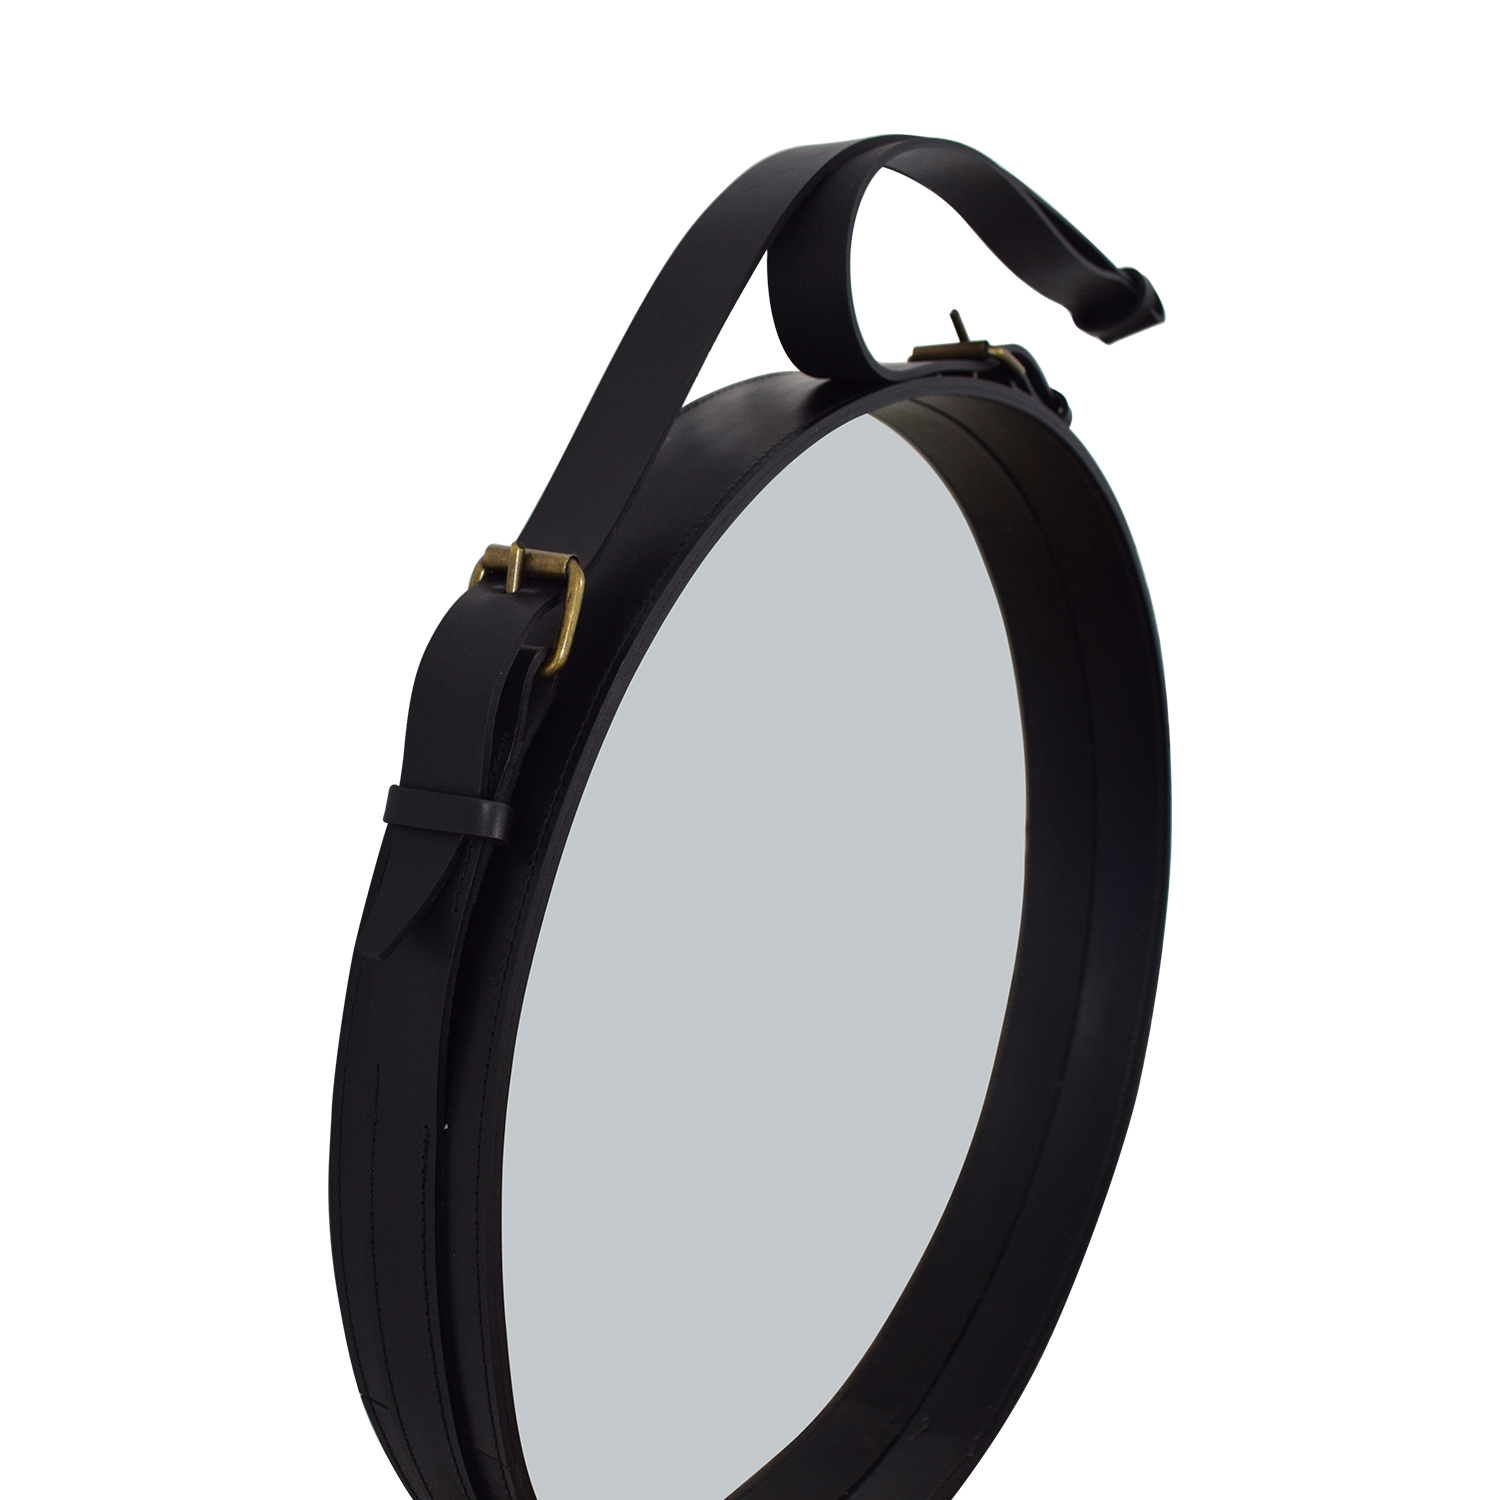 Circular Hanging Mirror with Leather Strap Frame for sale